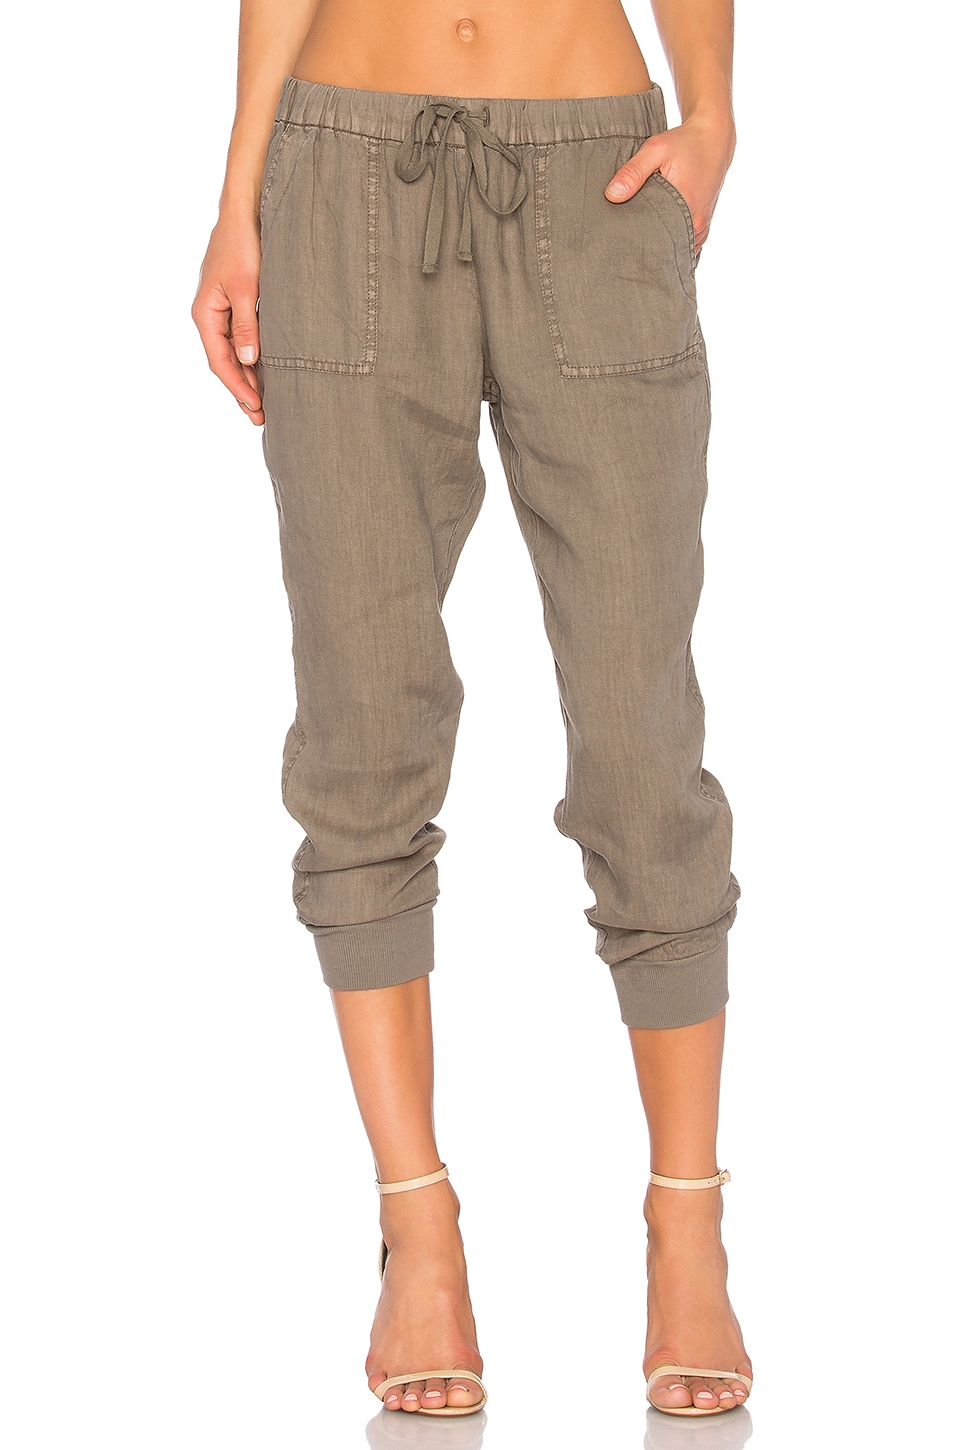 Joie Cynthia Pant in Fatigue